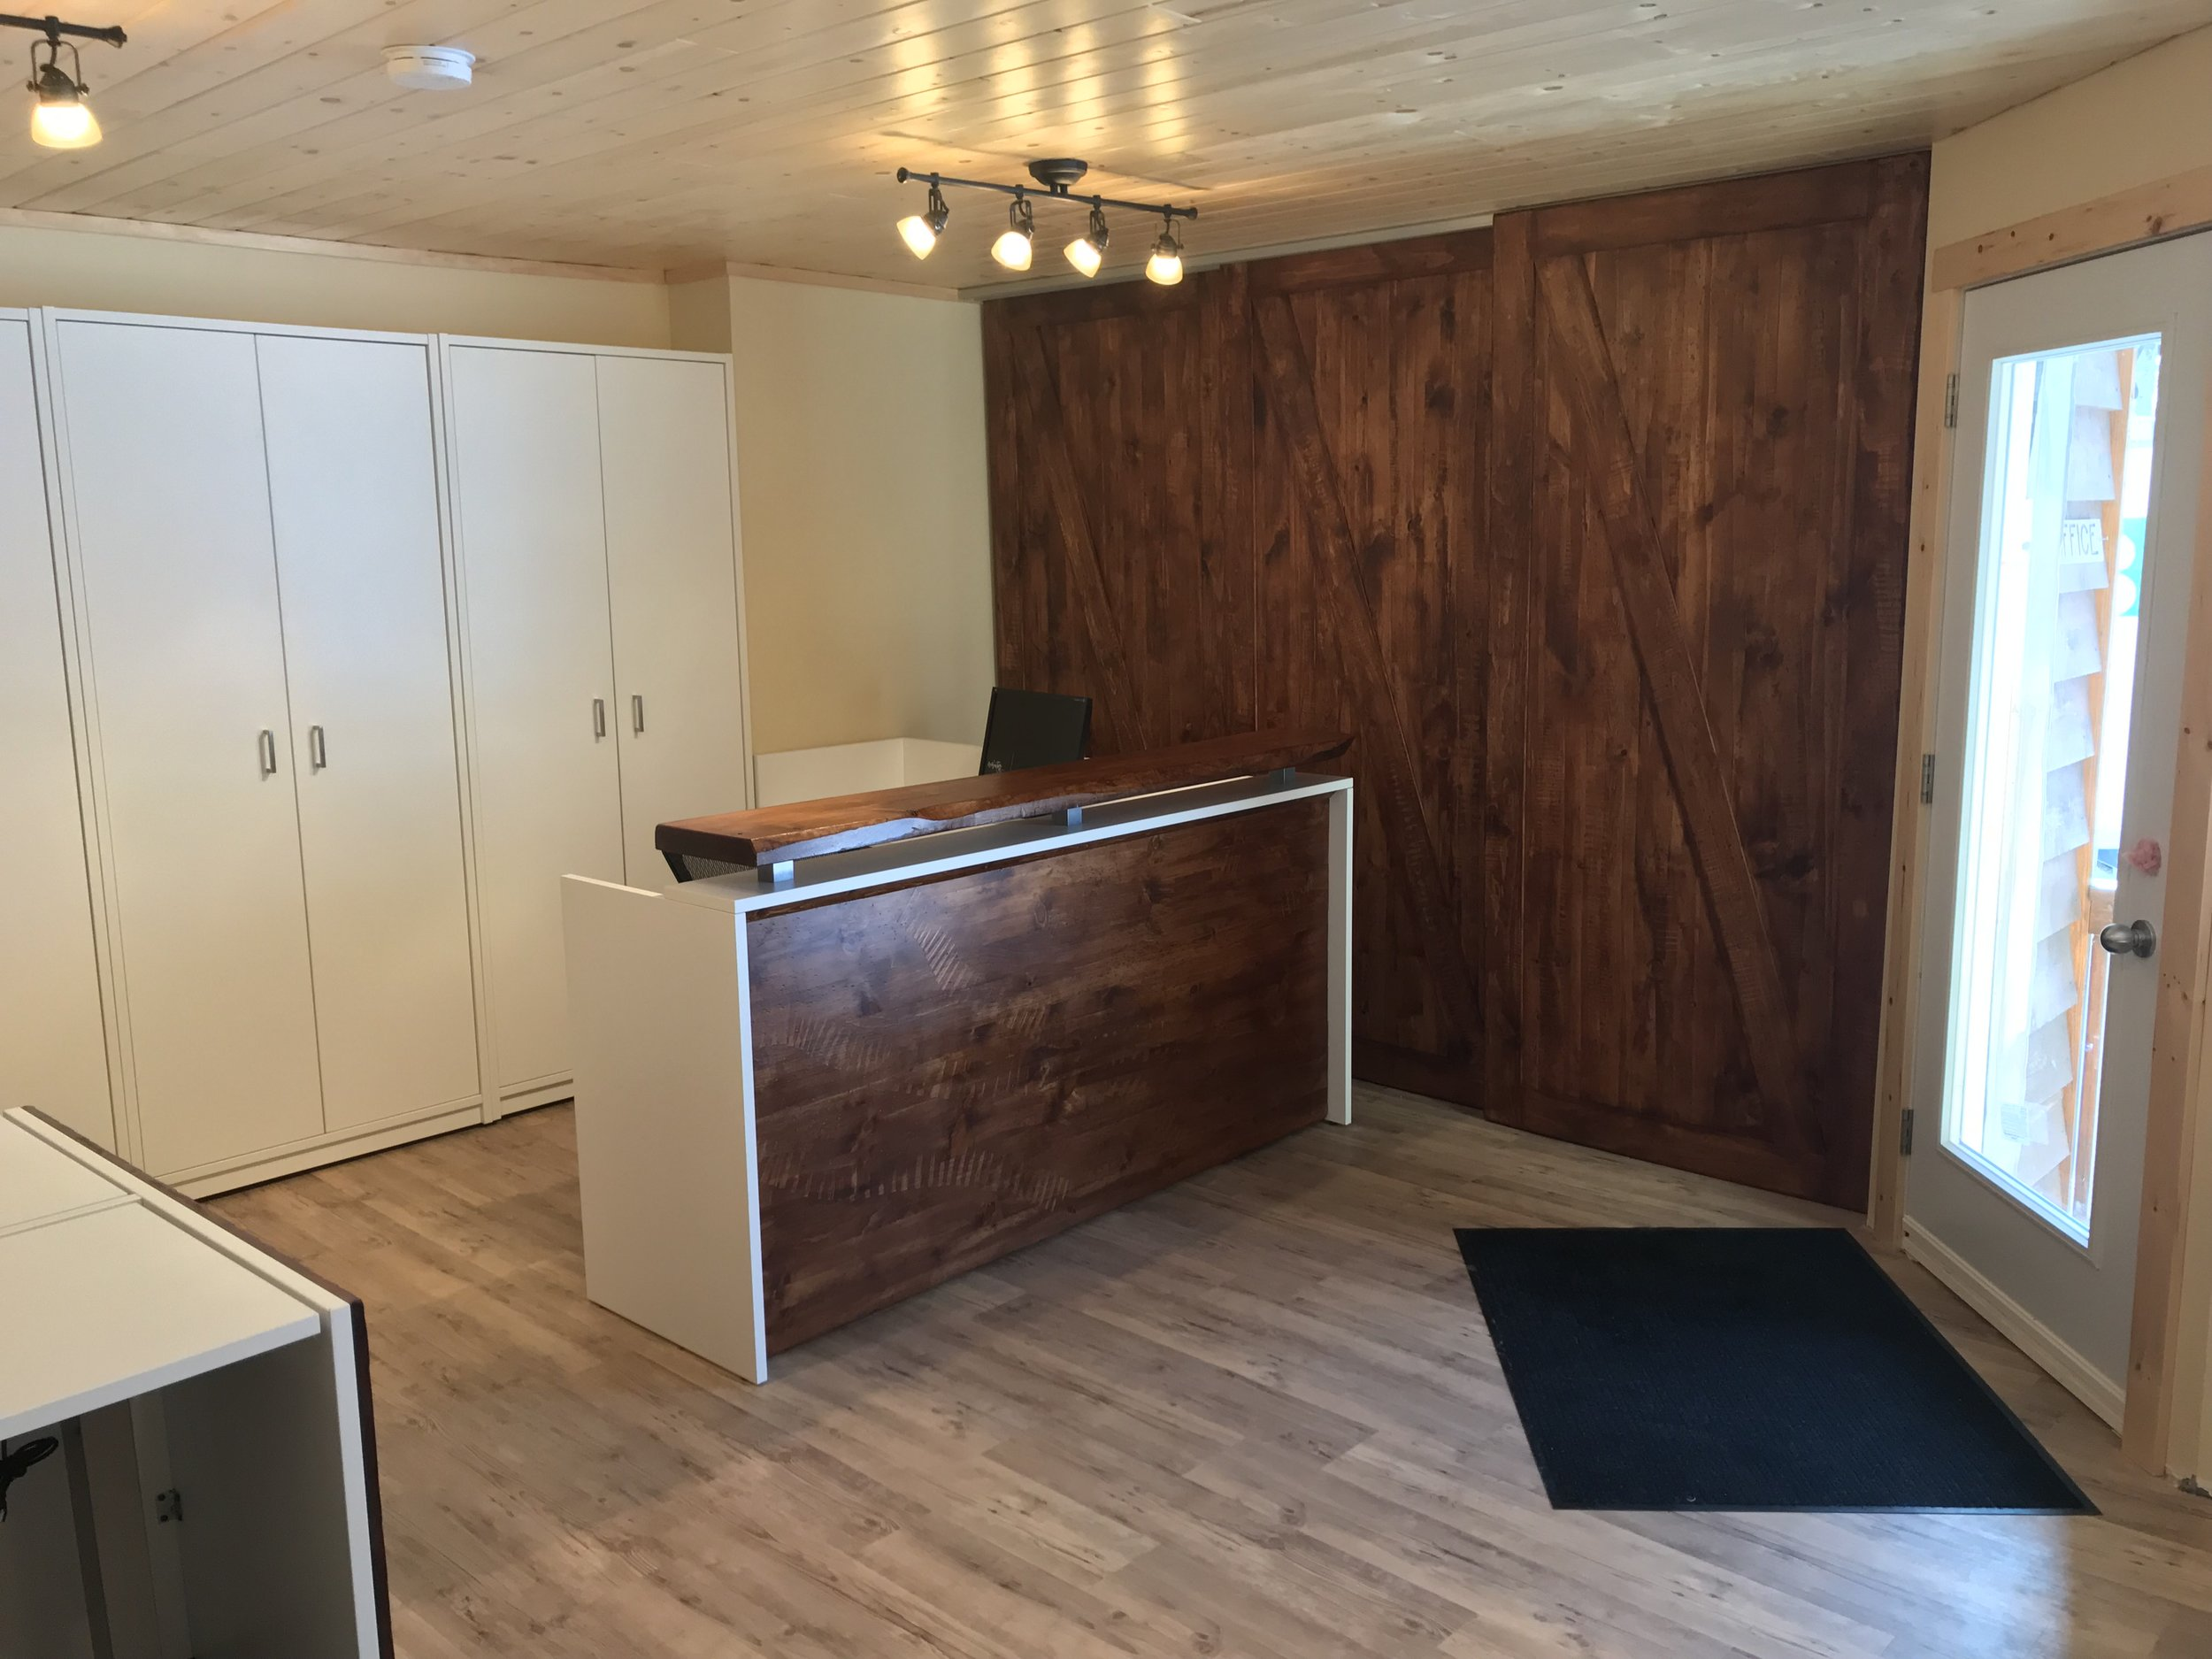 """Our new reception desk, with some great barn doors hiding the electrical panels we couldn't completely cover. The great thing about this desk (and the new front door) is that we can now see right down the camp road for those arriving at camp, so we don't have to """"wonder"""" who's arrived!"""